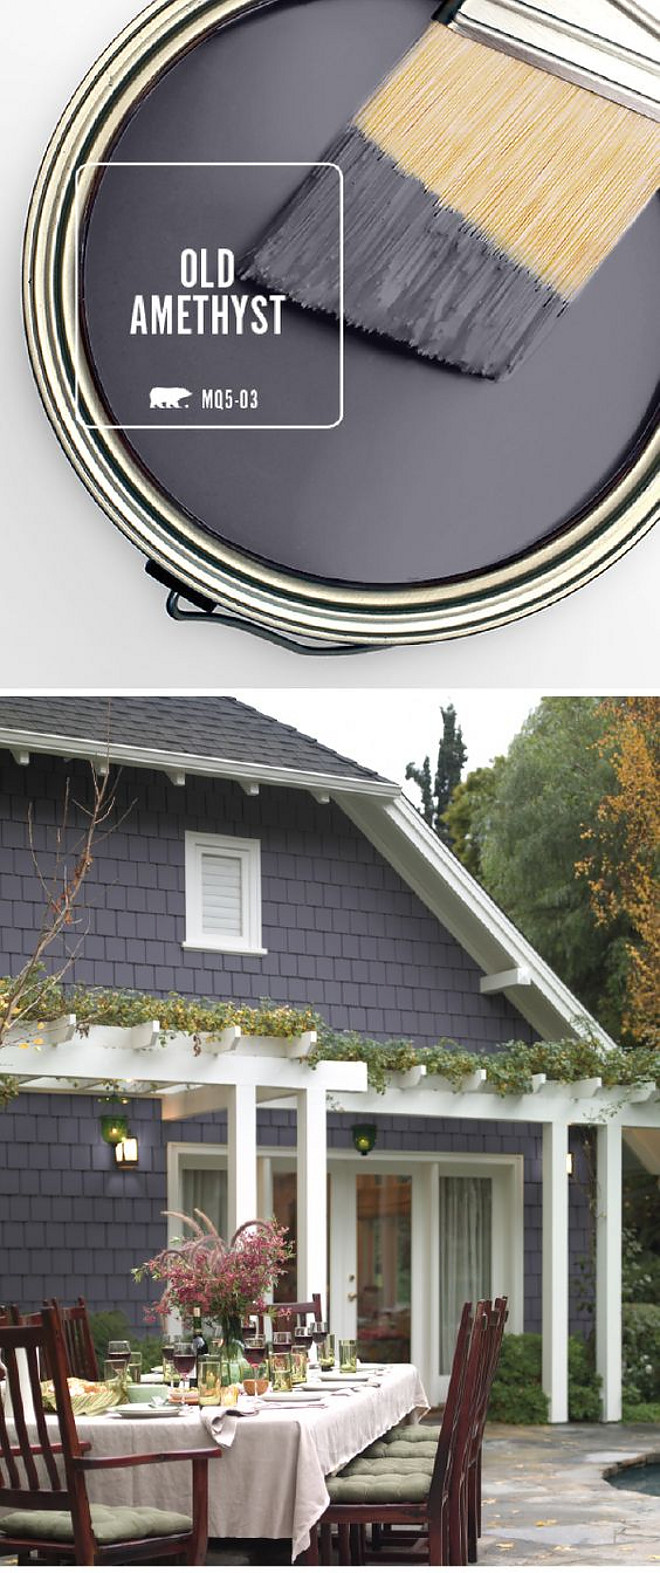 Best Dark Grey Exterior Paint Color. Best Dark Grey Exterior Paint Color Ideas. Behr Old Amethyst. Designer Paint Color Pick Best Dark Grey Exterior Paint Color Behr Old Amethyst #BestDarkGrey #Exterior #PaintColor #BehrOldAmethyst via Behr